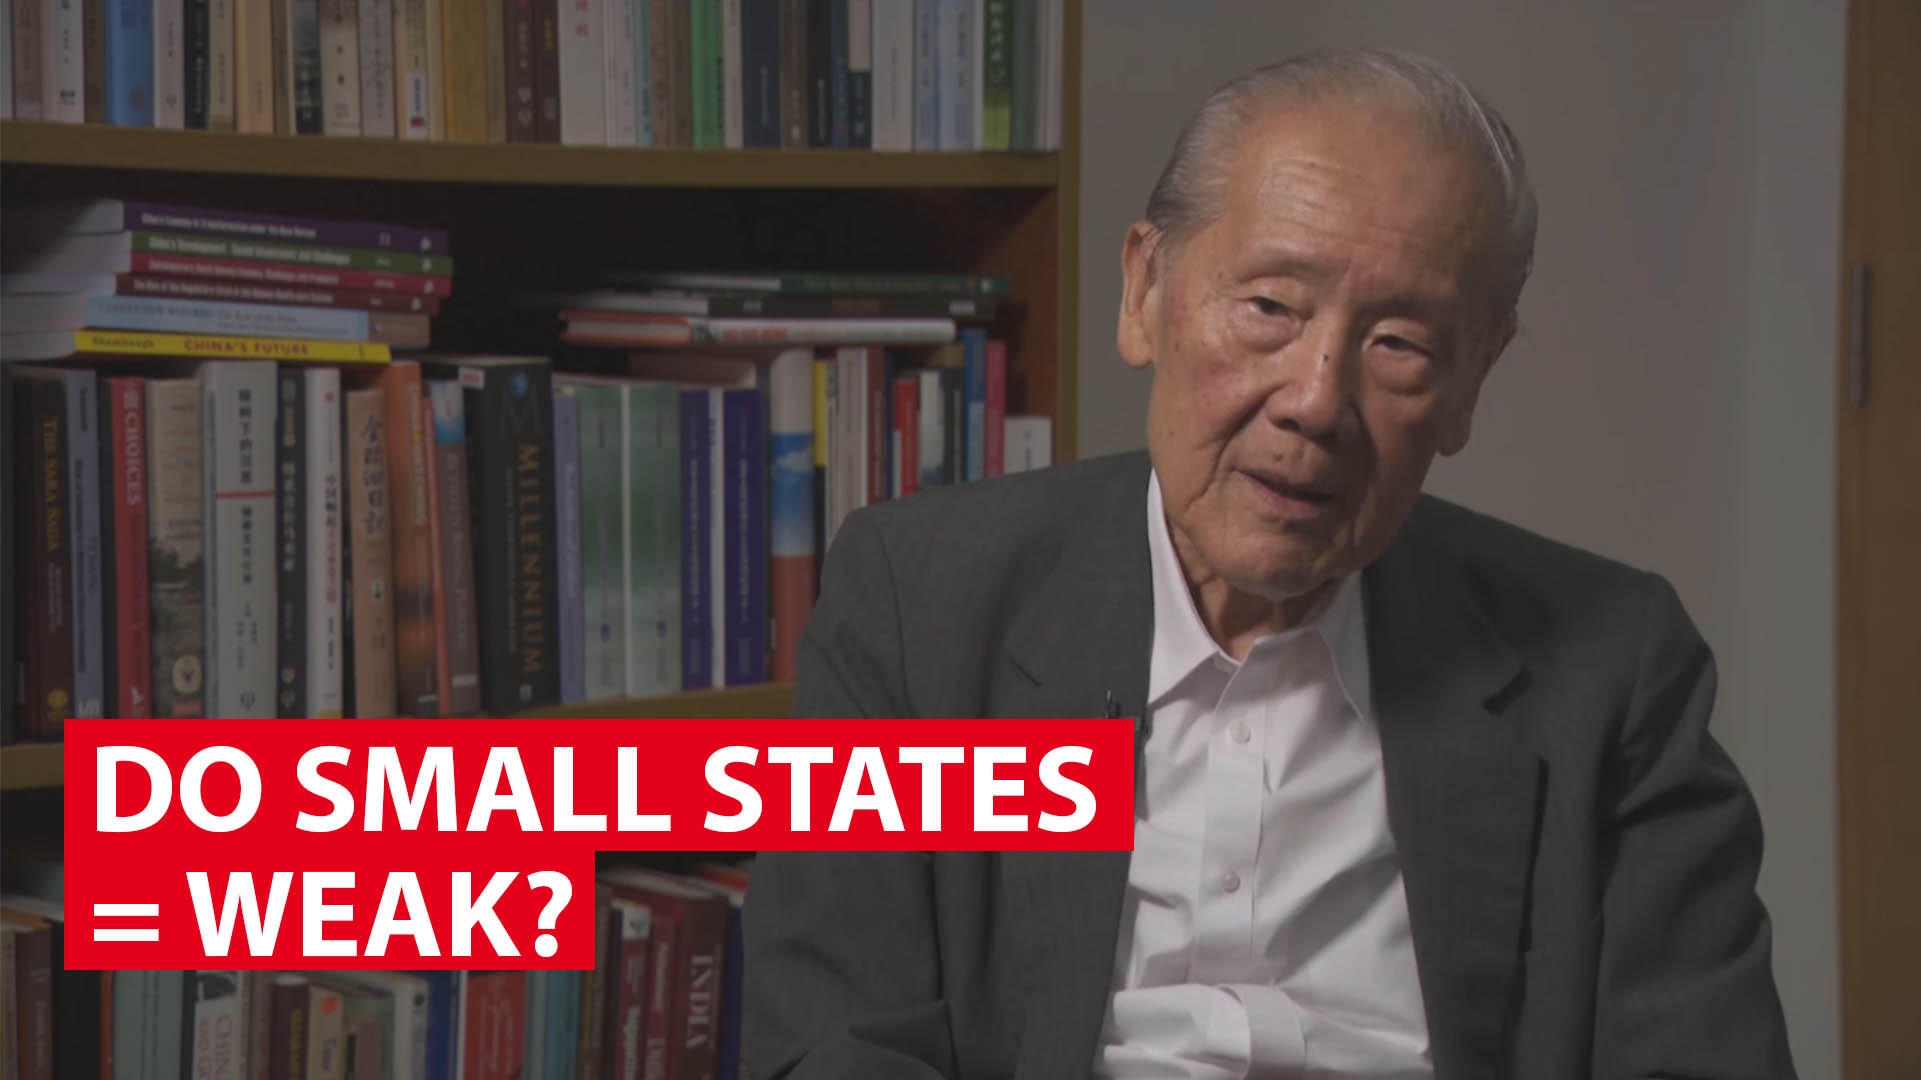 Wang Gungwu: Do small states = weak?